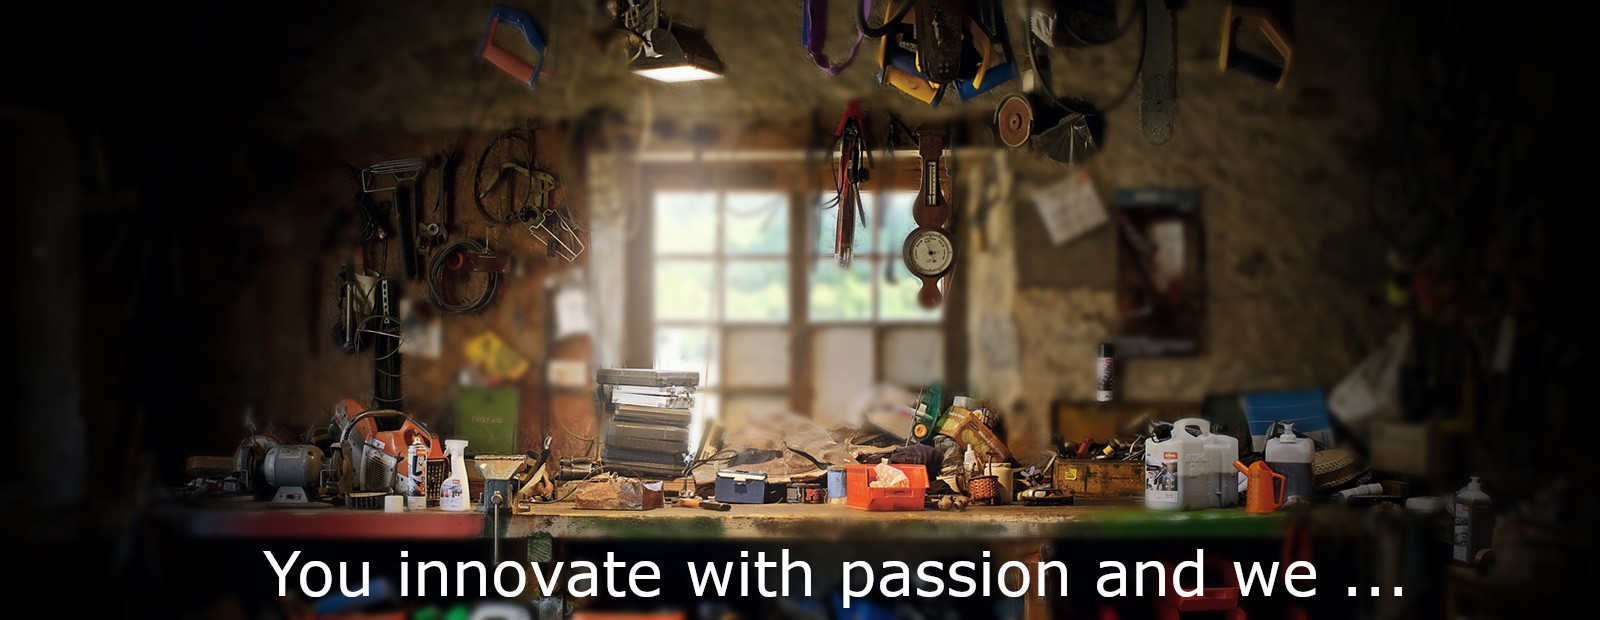 Innovation Passion